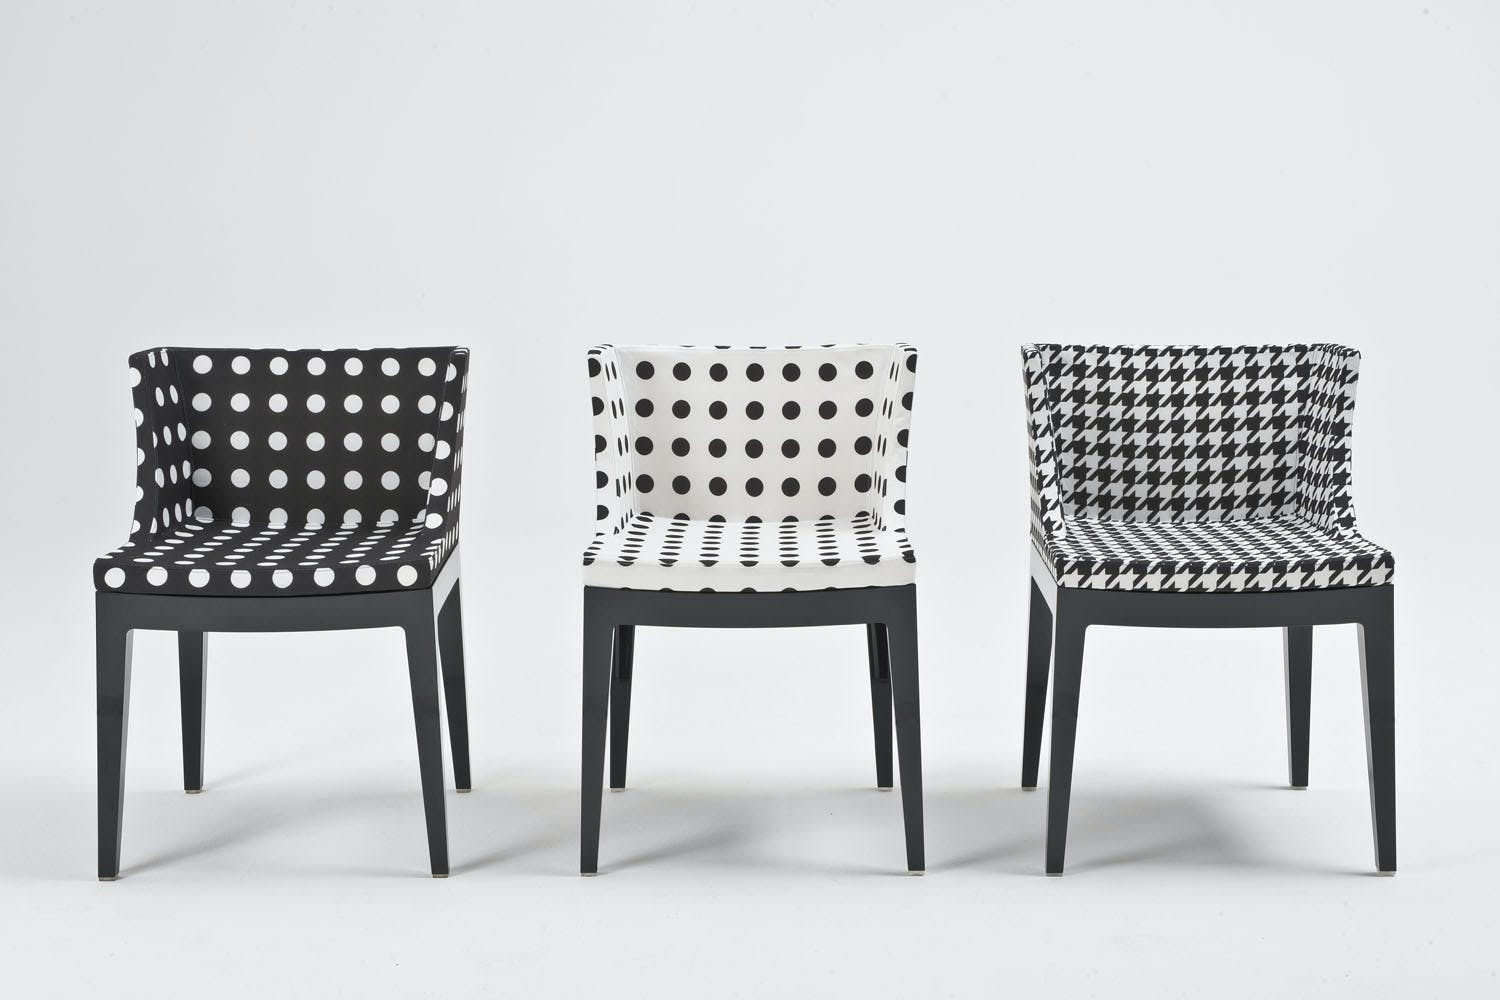 Mademoiselle starck fabric chair by philippe starck for for Sedie design furniture e commerce